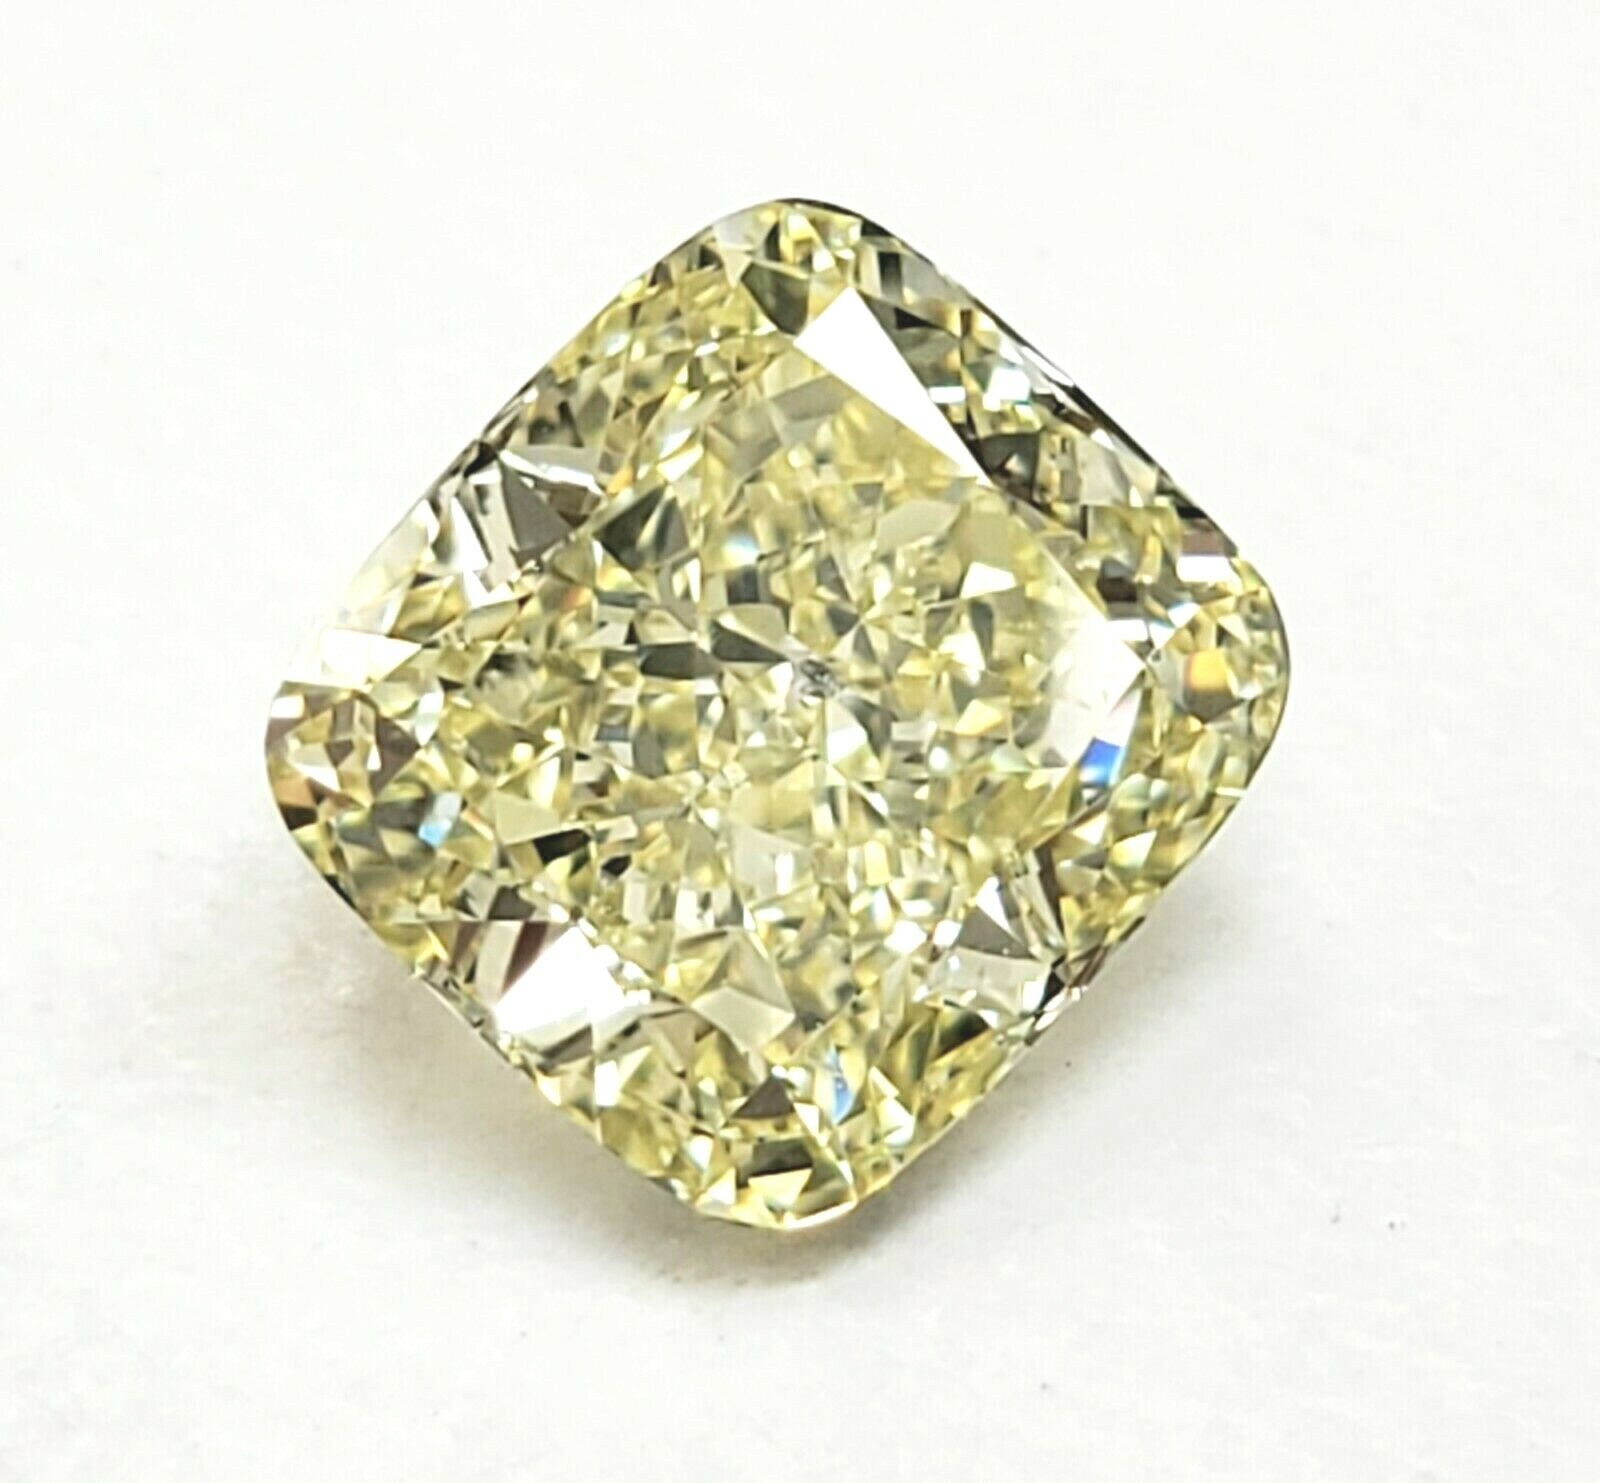 Fancy Yellow Diamond 2 Carat Natural Loose Cushion Cut GIA Certified SI2 Clarity